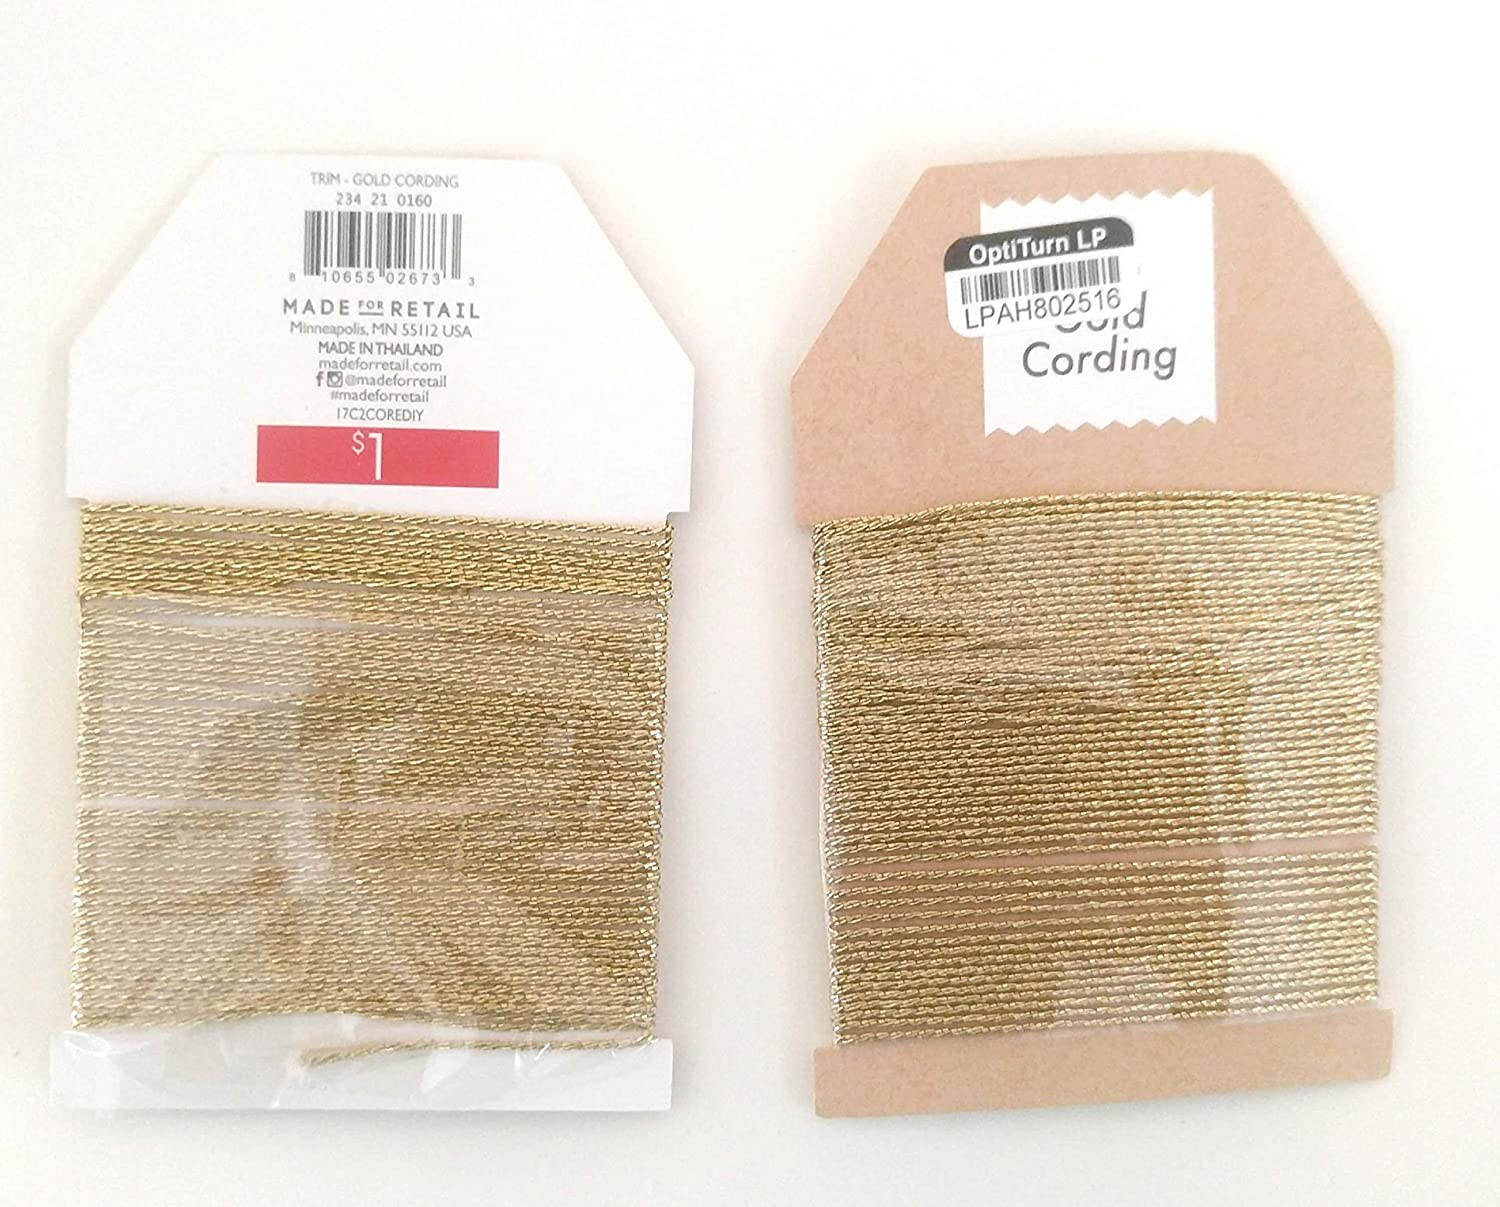 Braided Bakers Twine GOLD OPTITURN LP